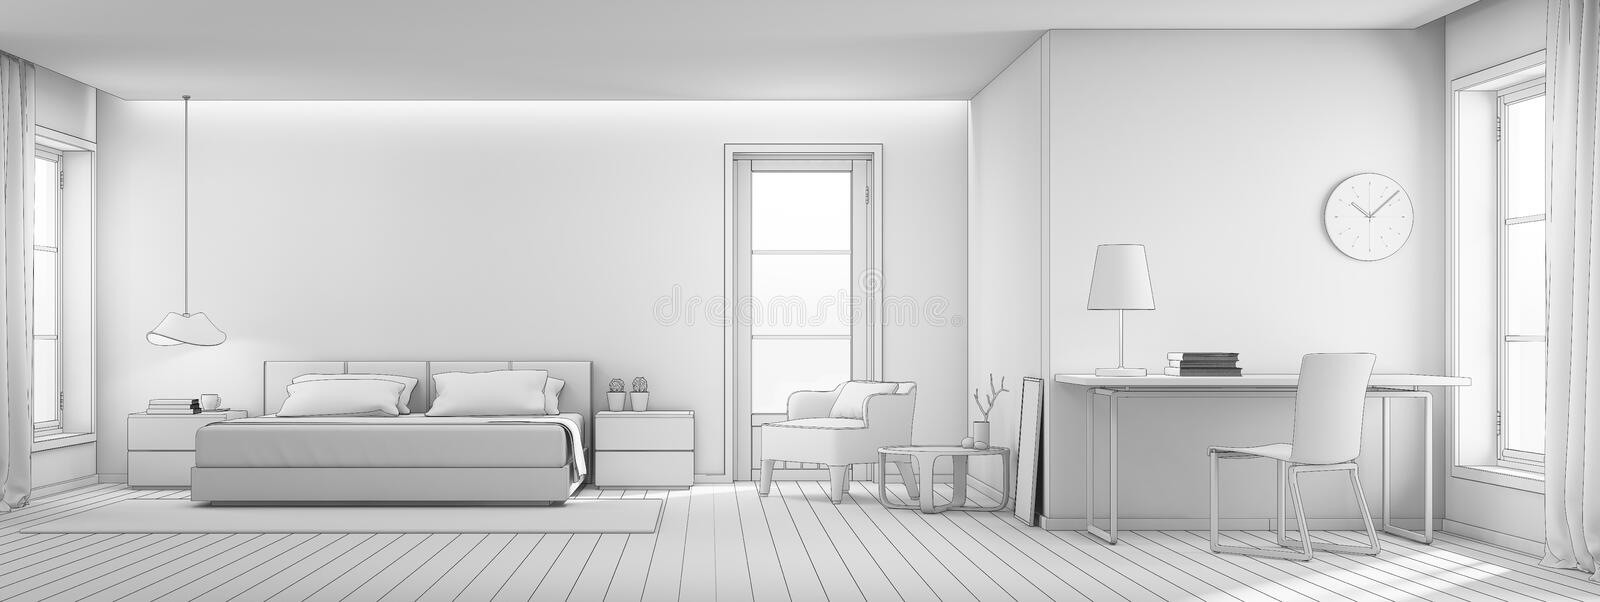 modern interior office stock. Download Sketch Design Of Bedroom And Living Room In Luxury House, Modern Interior Home Office Stock W